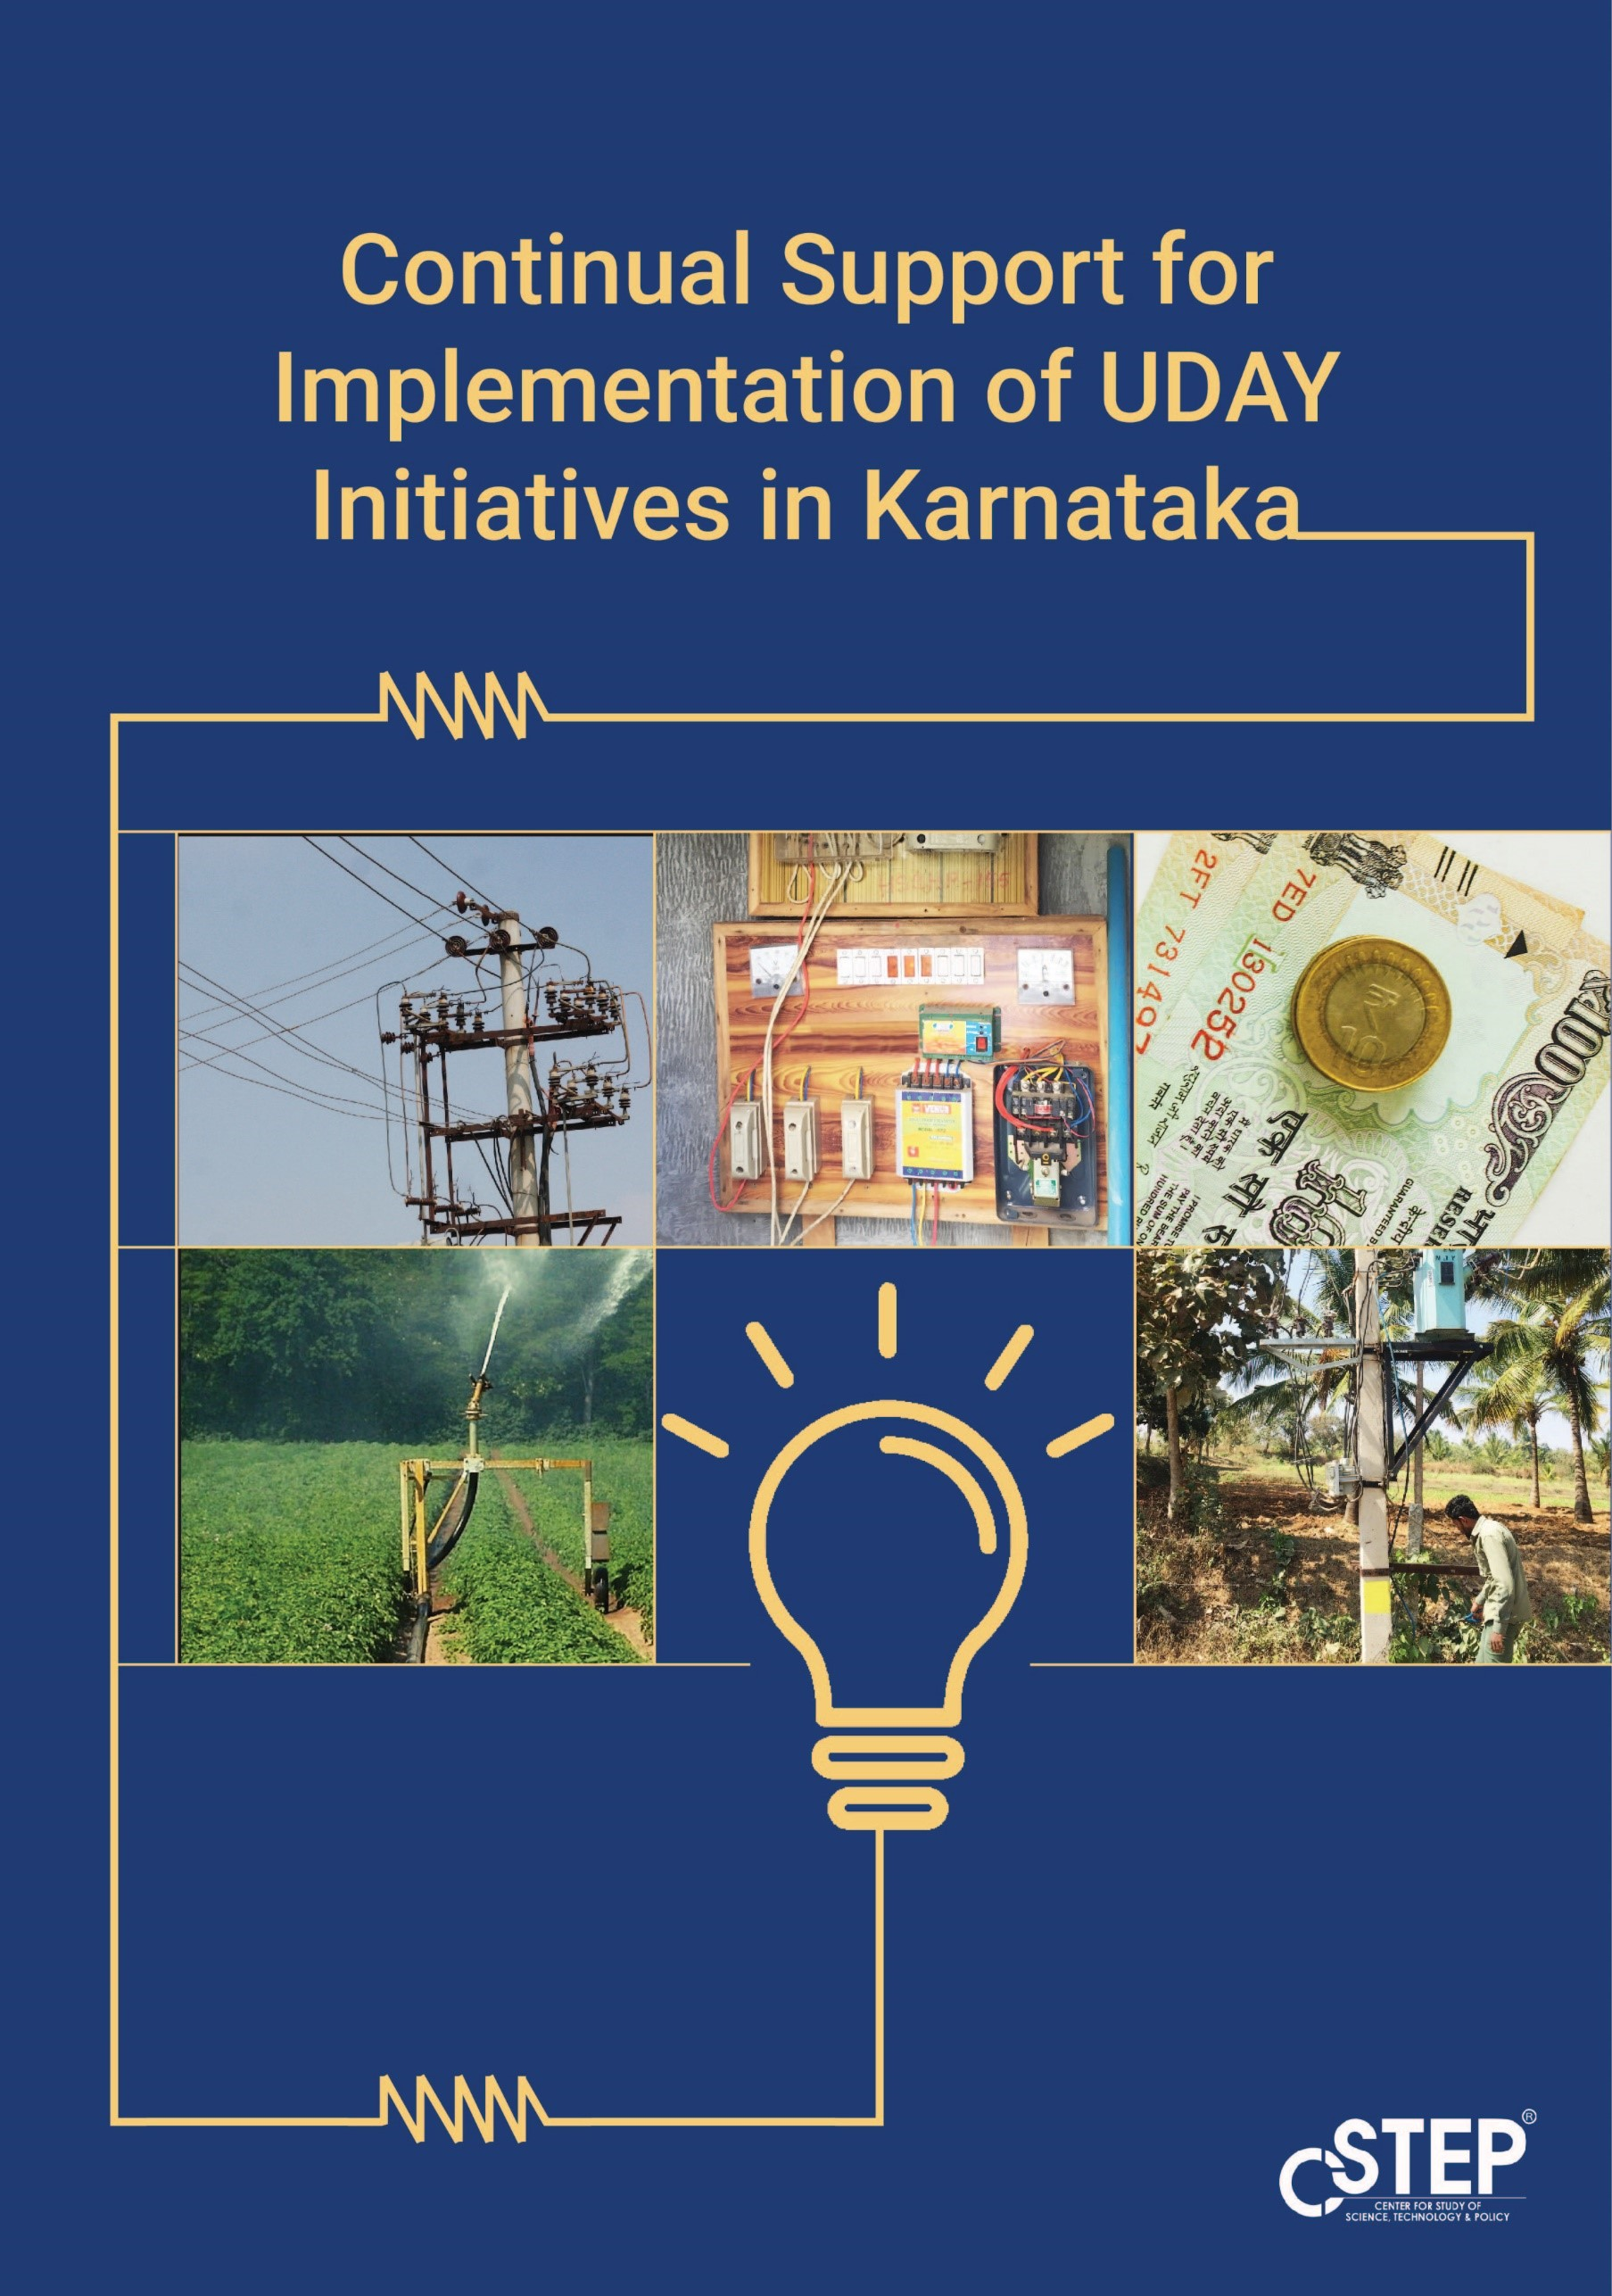 Continual Support for Implementation of UDAY Initiatives in Karnataka